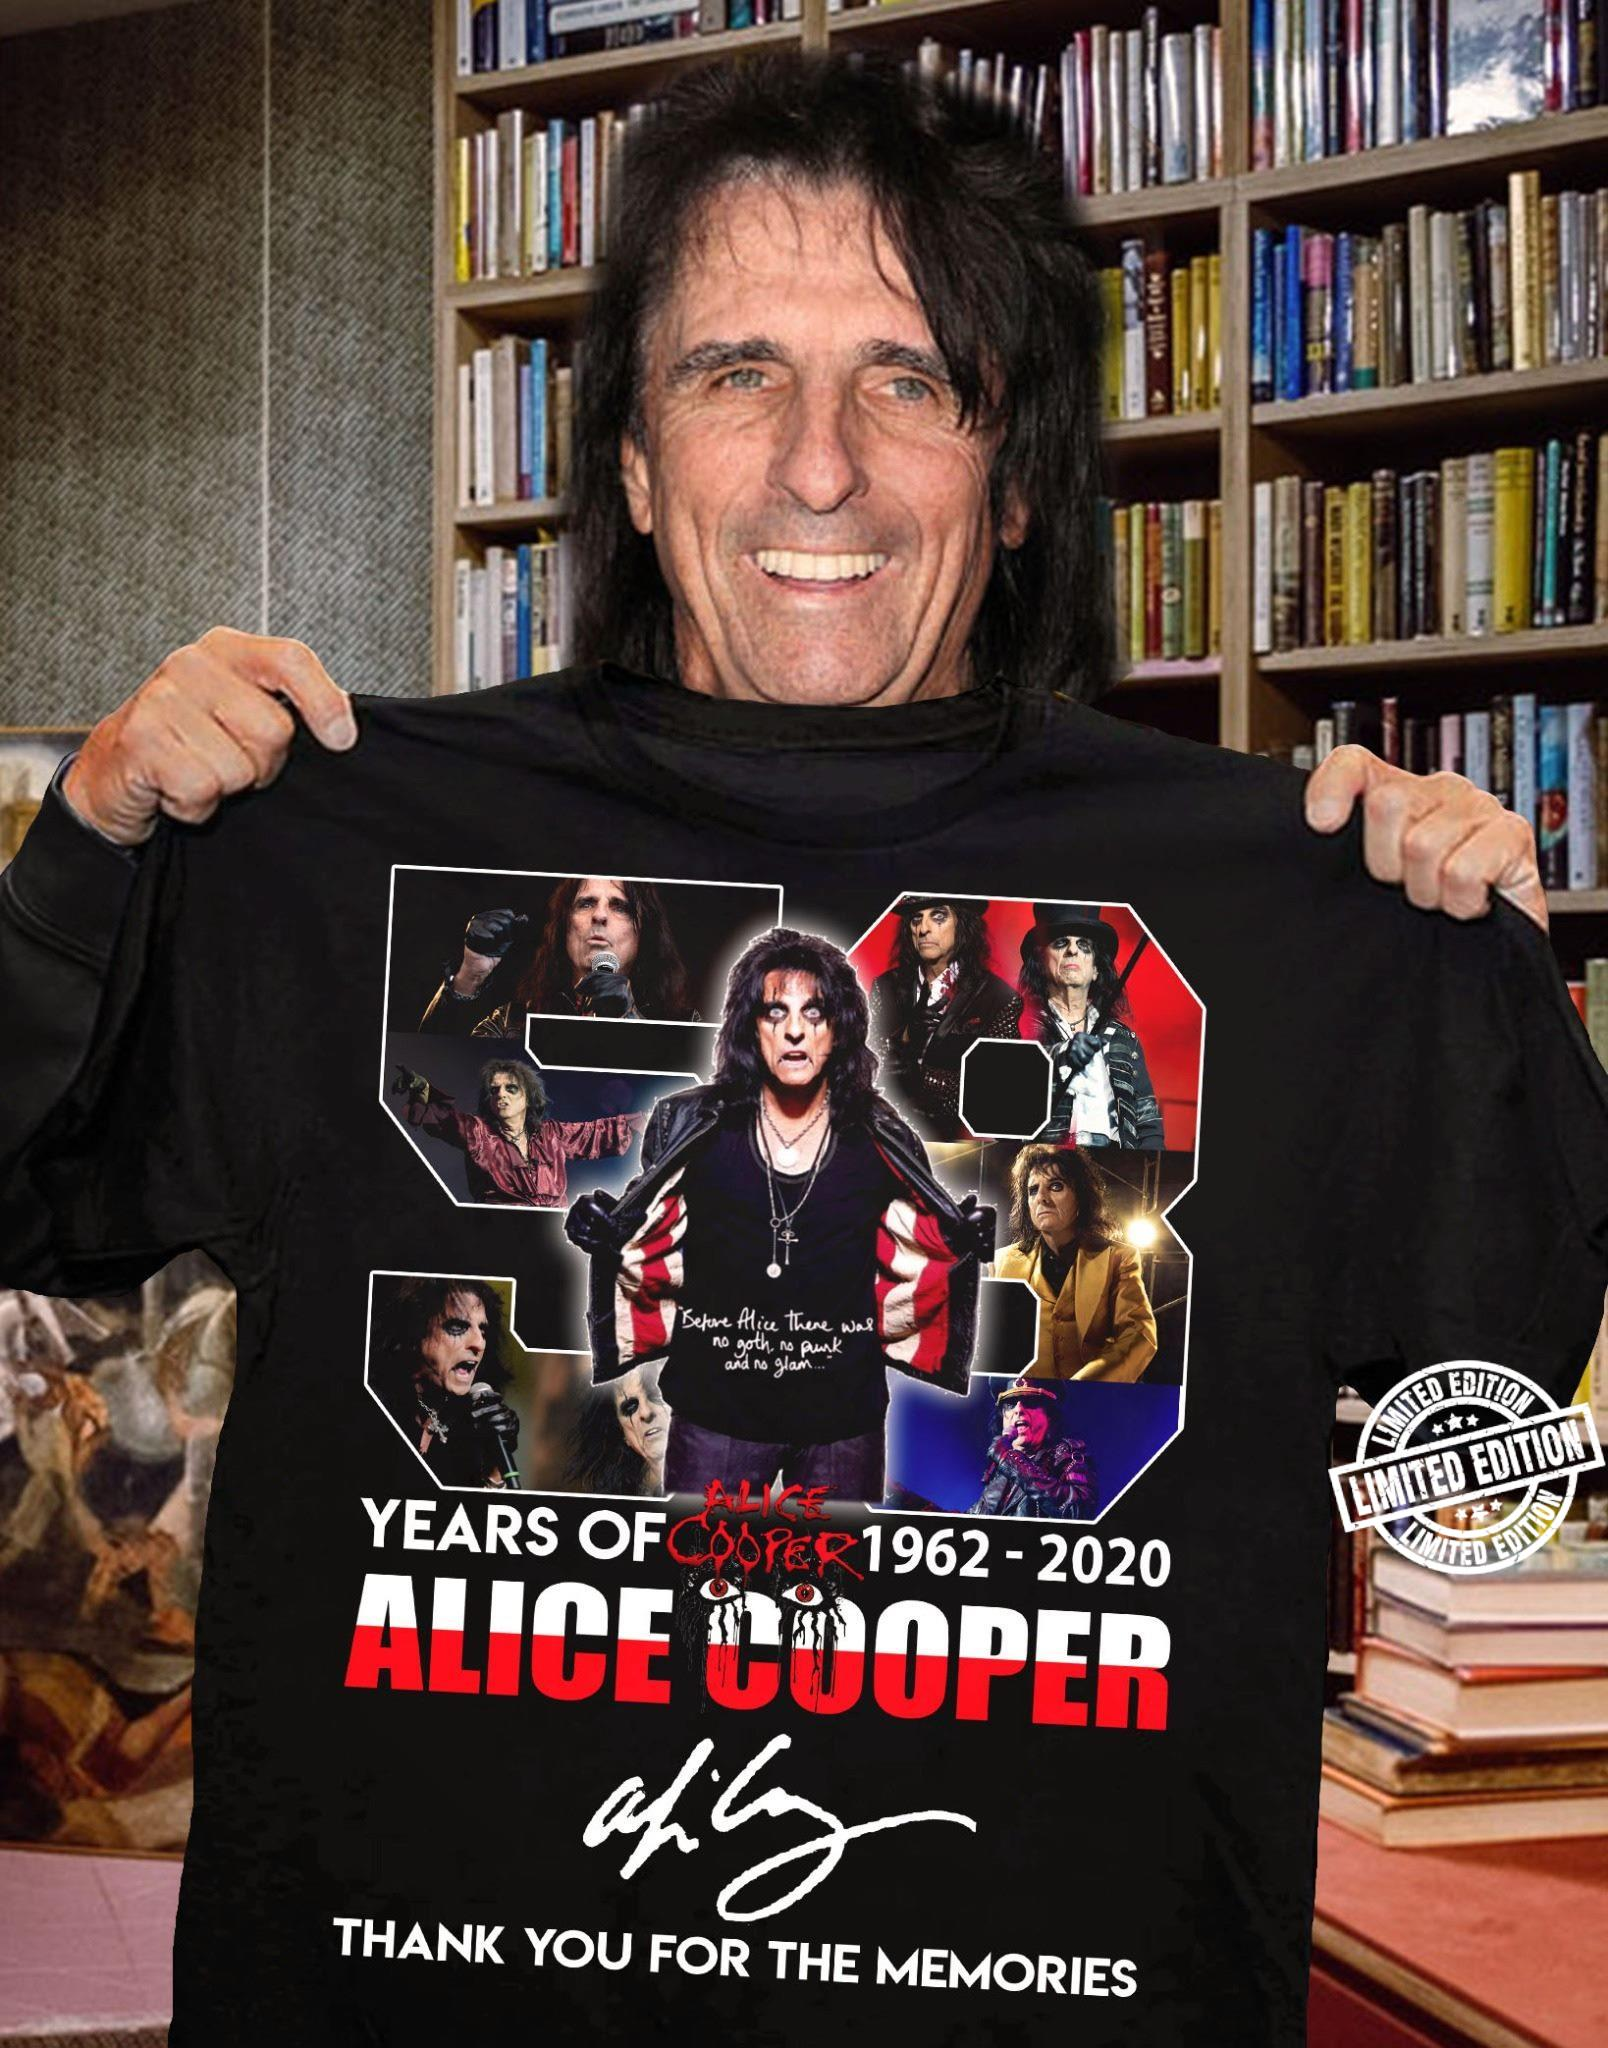 Years of 1962-2020 alice cooper thank you for the memories shirt